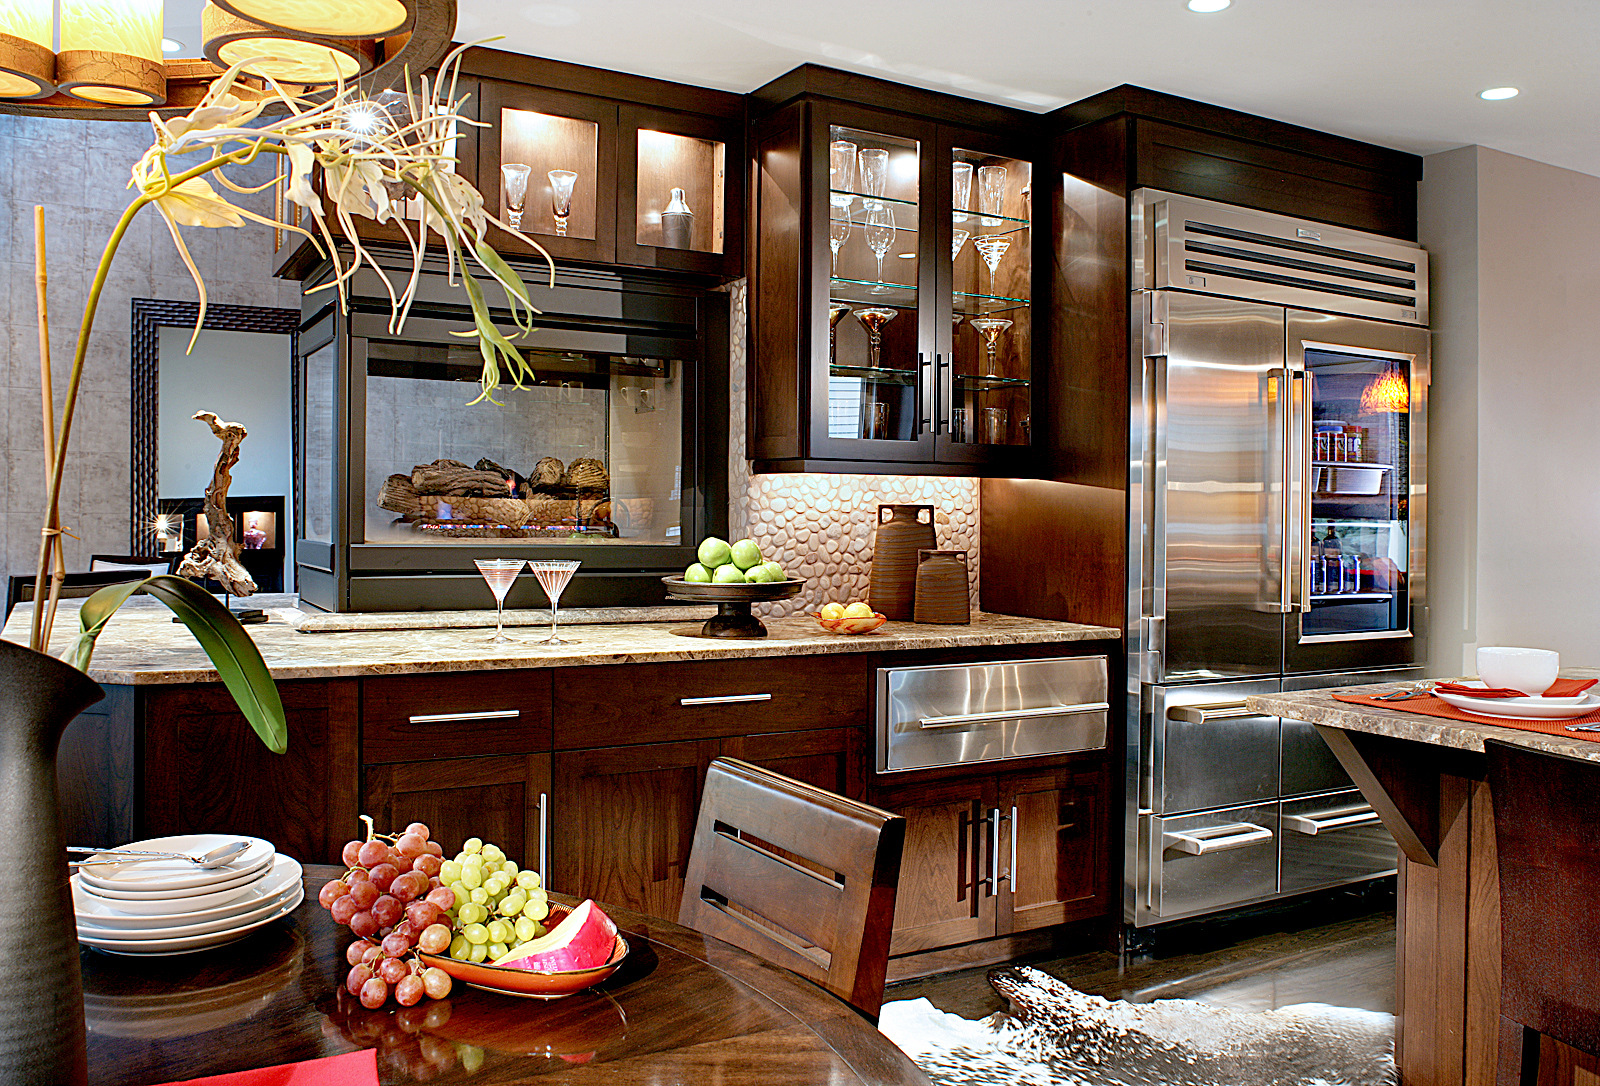 Visit peter salerno inc s stunning hgtv professionals for Award winning kitchen designs 2010